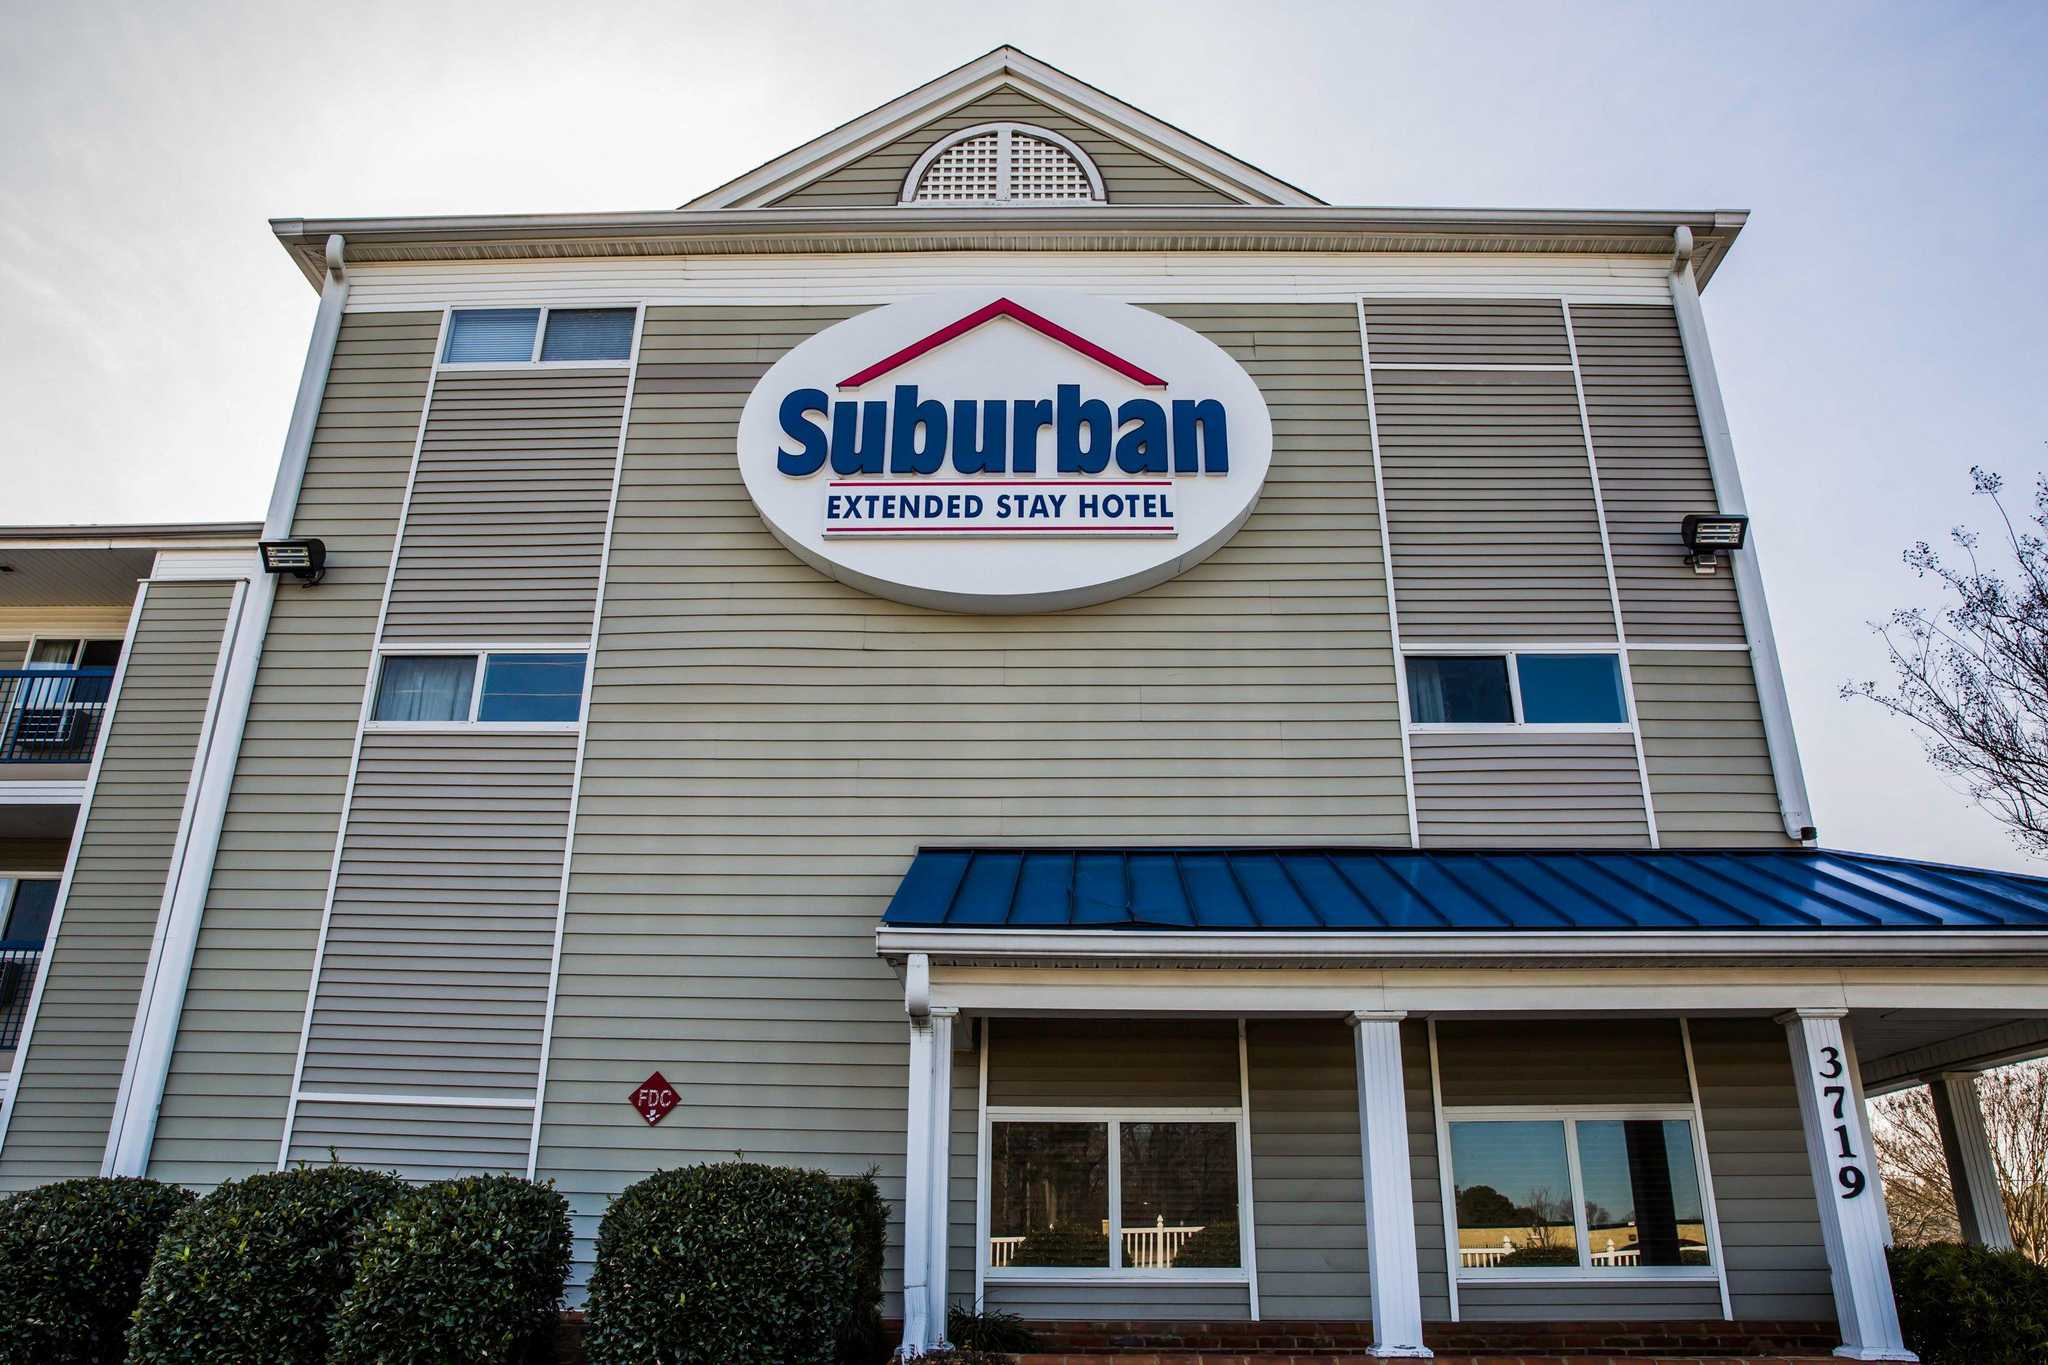 Suburban Extended Stay Hotel Near Fort Bragg Fayetteville Nc